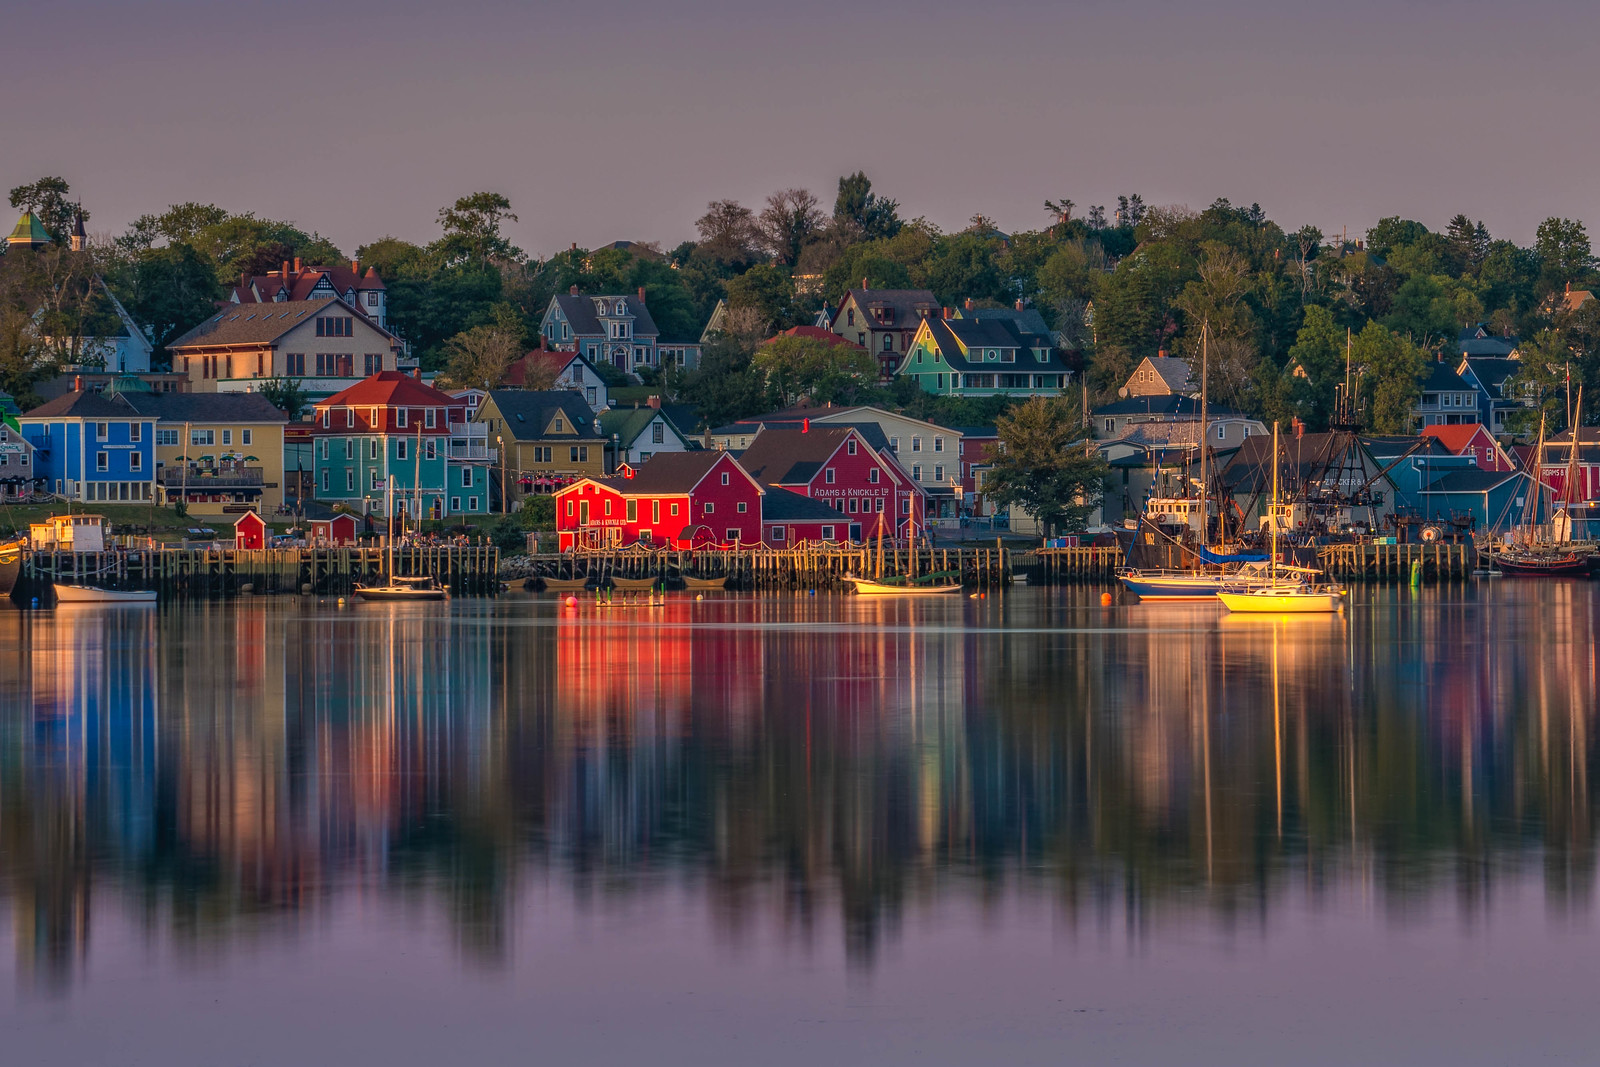 The town of Lunenberg, Nova Scotia